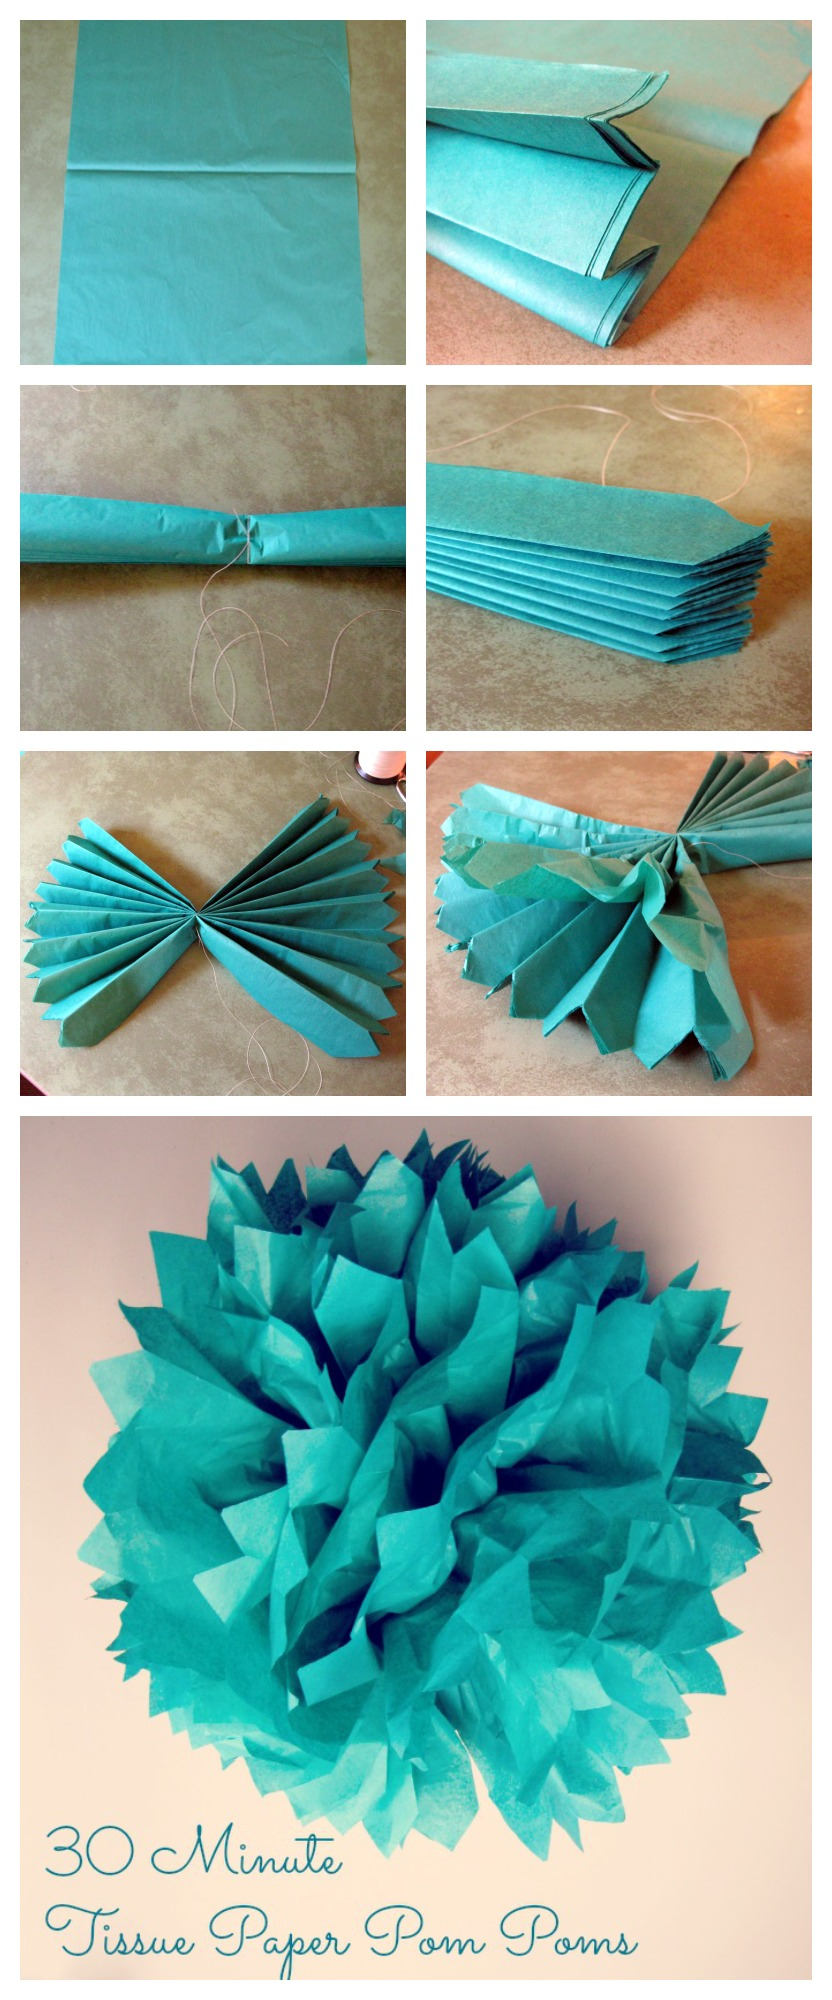 making tissue paper pom poms Paper tissue pom pom catologs and paper tissue pom pom manufacturers - 396 paper tissue pom pom manufacturers, exporters & suppliers from china 登录 | 免费注册.